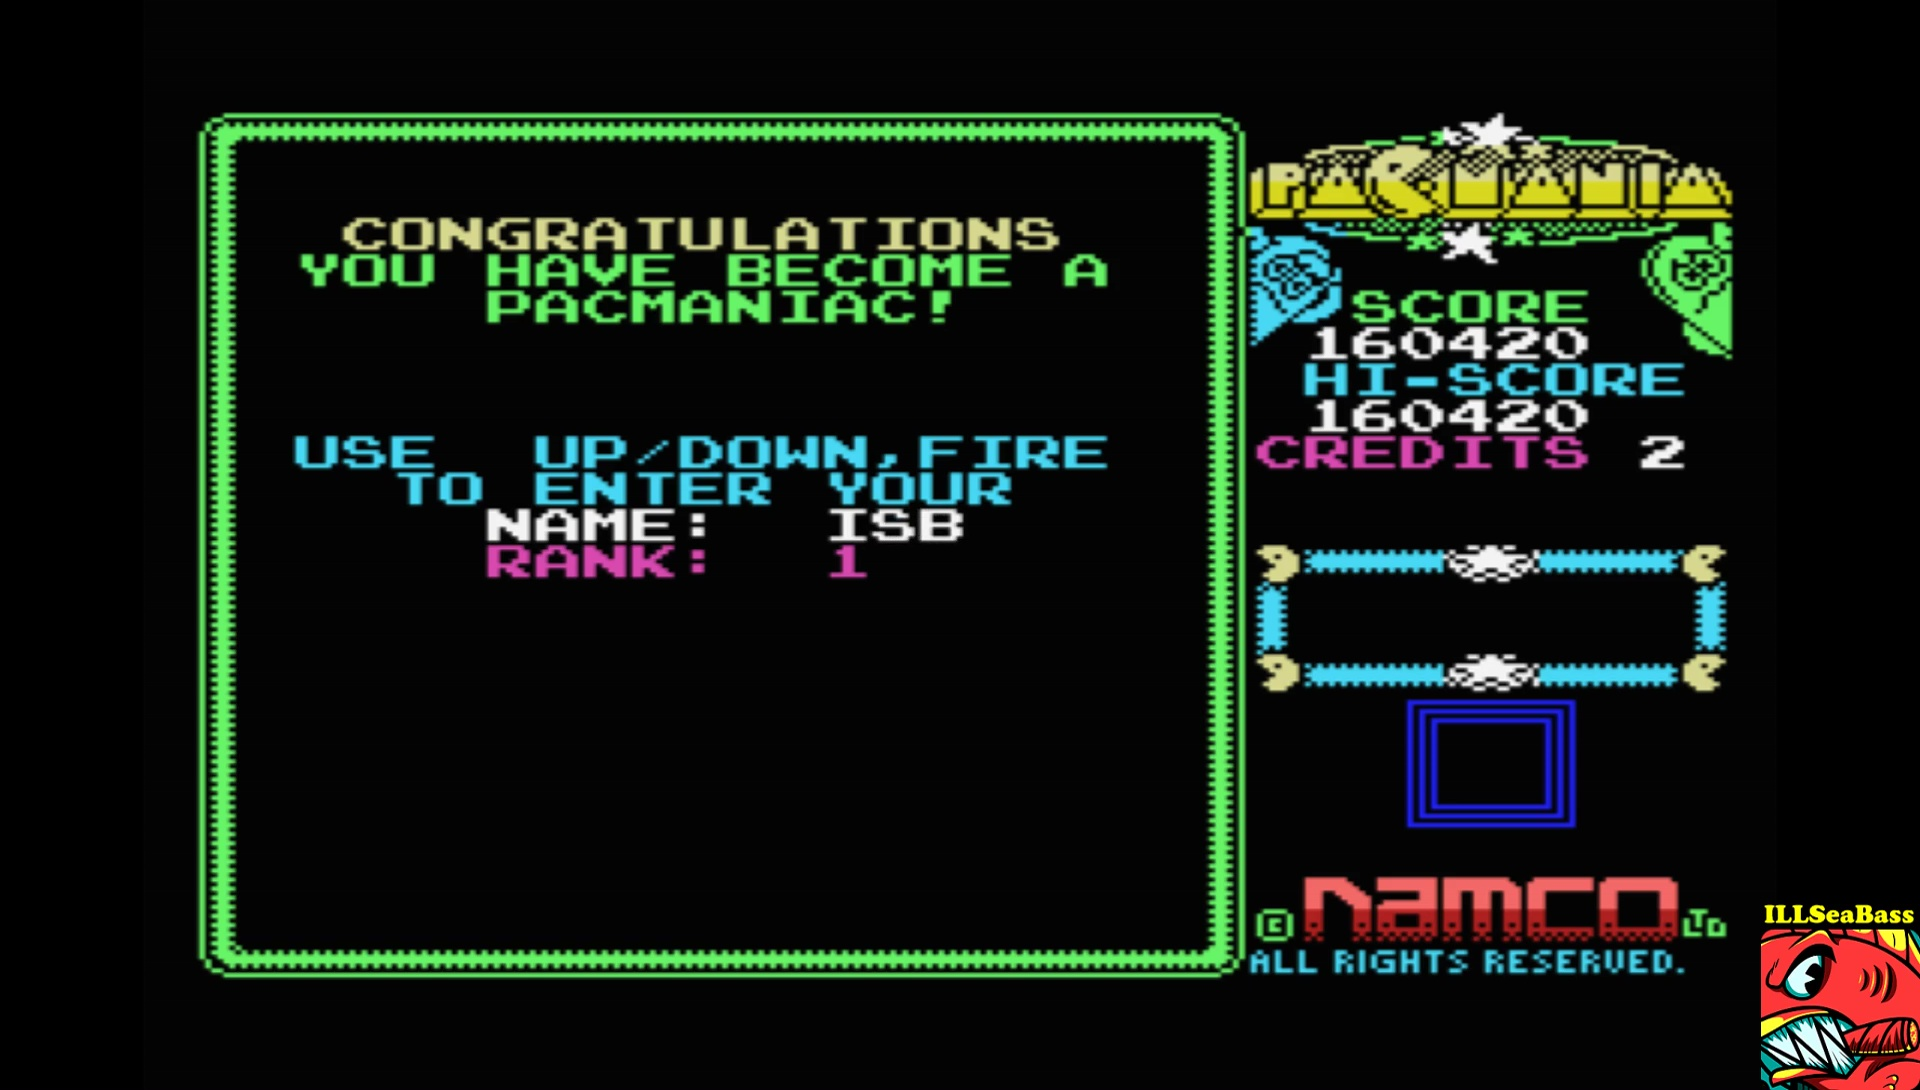 ILLSeaBass: Pacmania [Level 1 [No Continues]] (MSX Emulated) 160,420 points on 2017-08-31 12:49:41